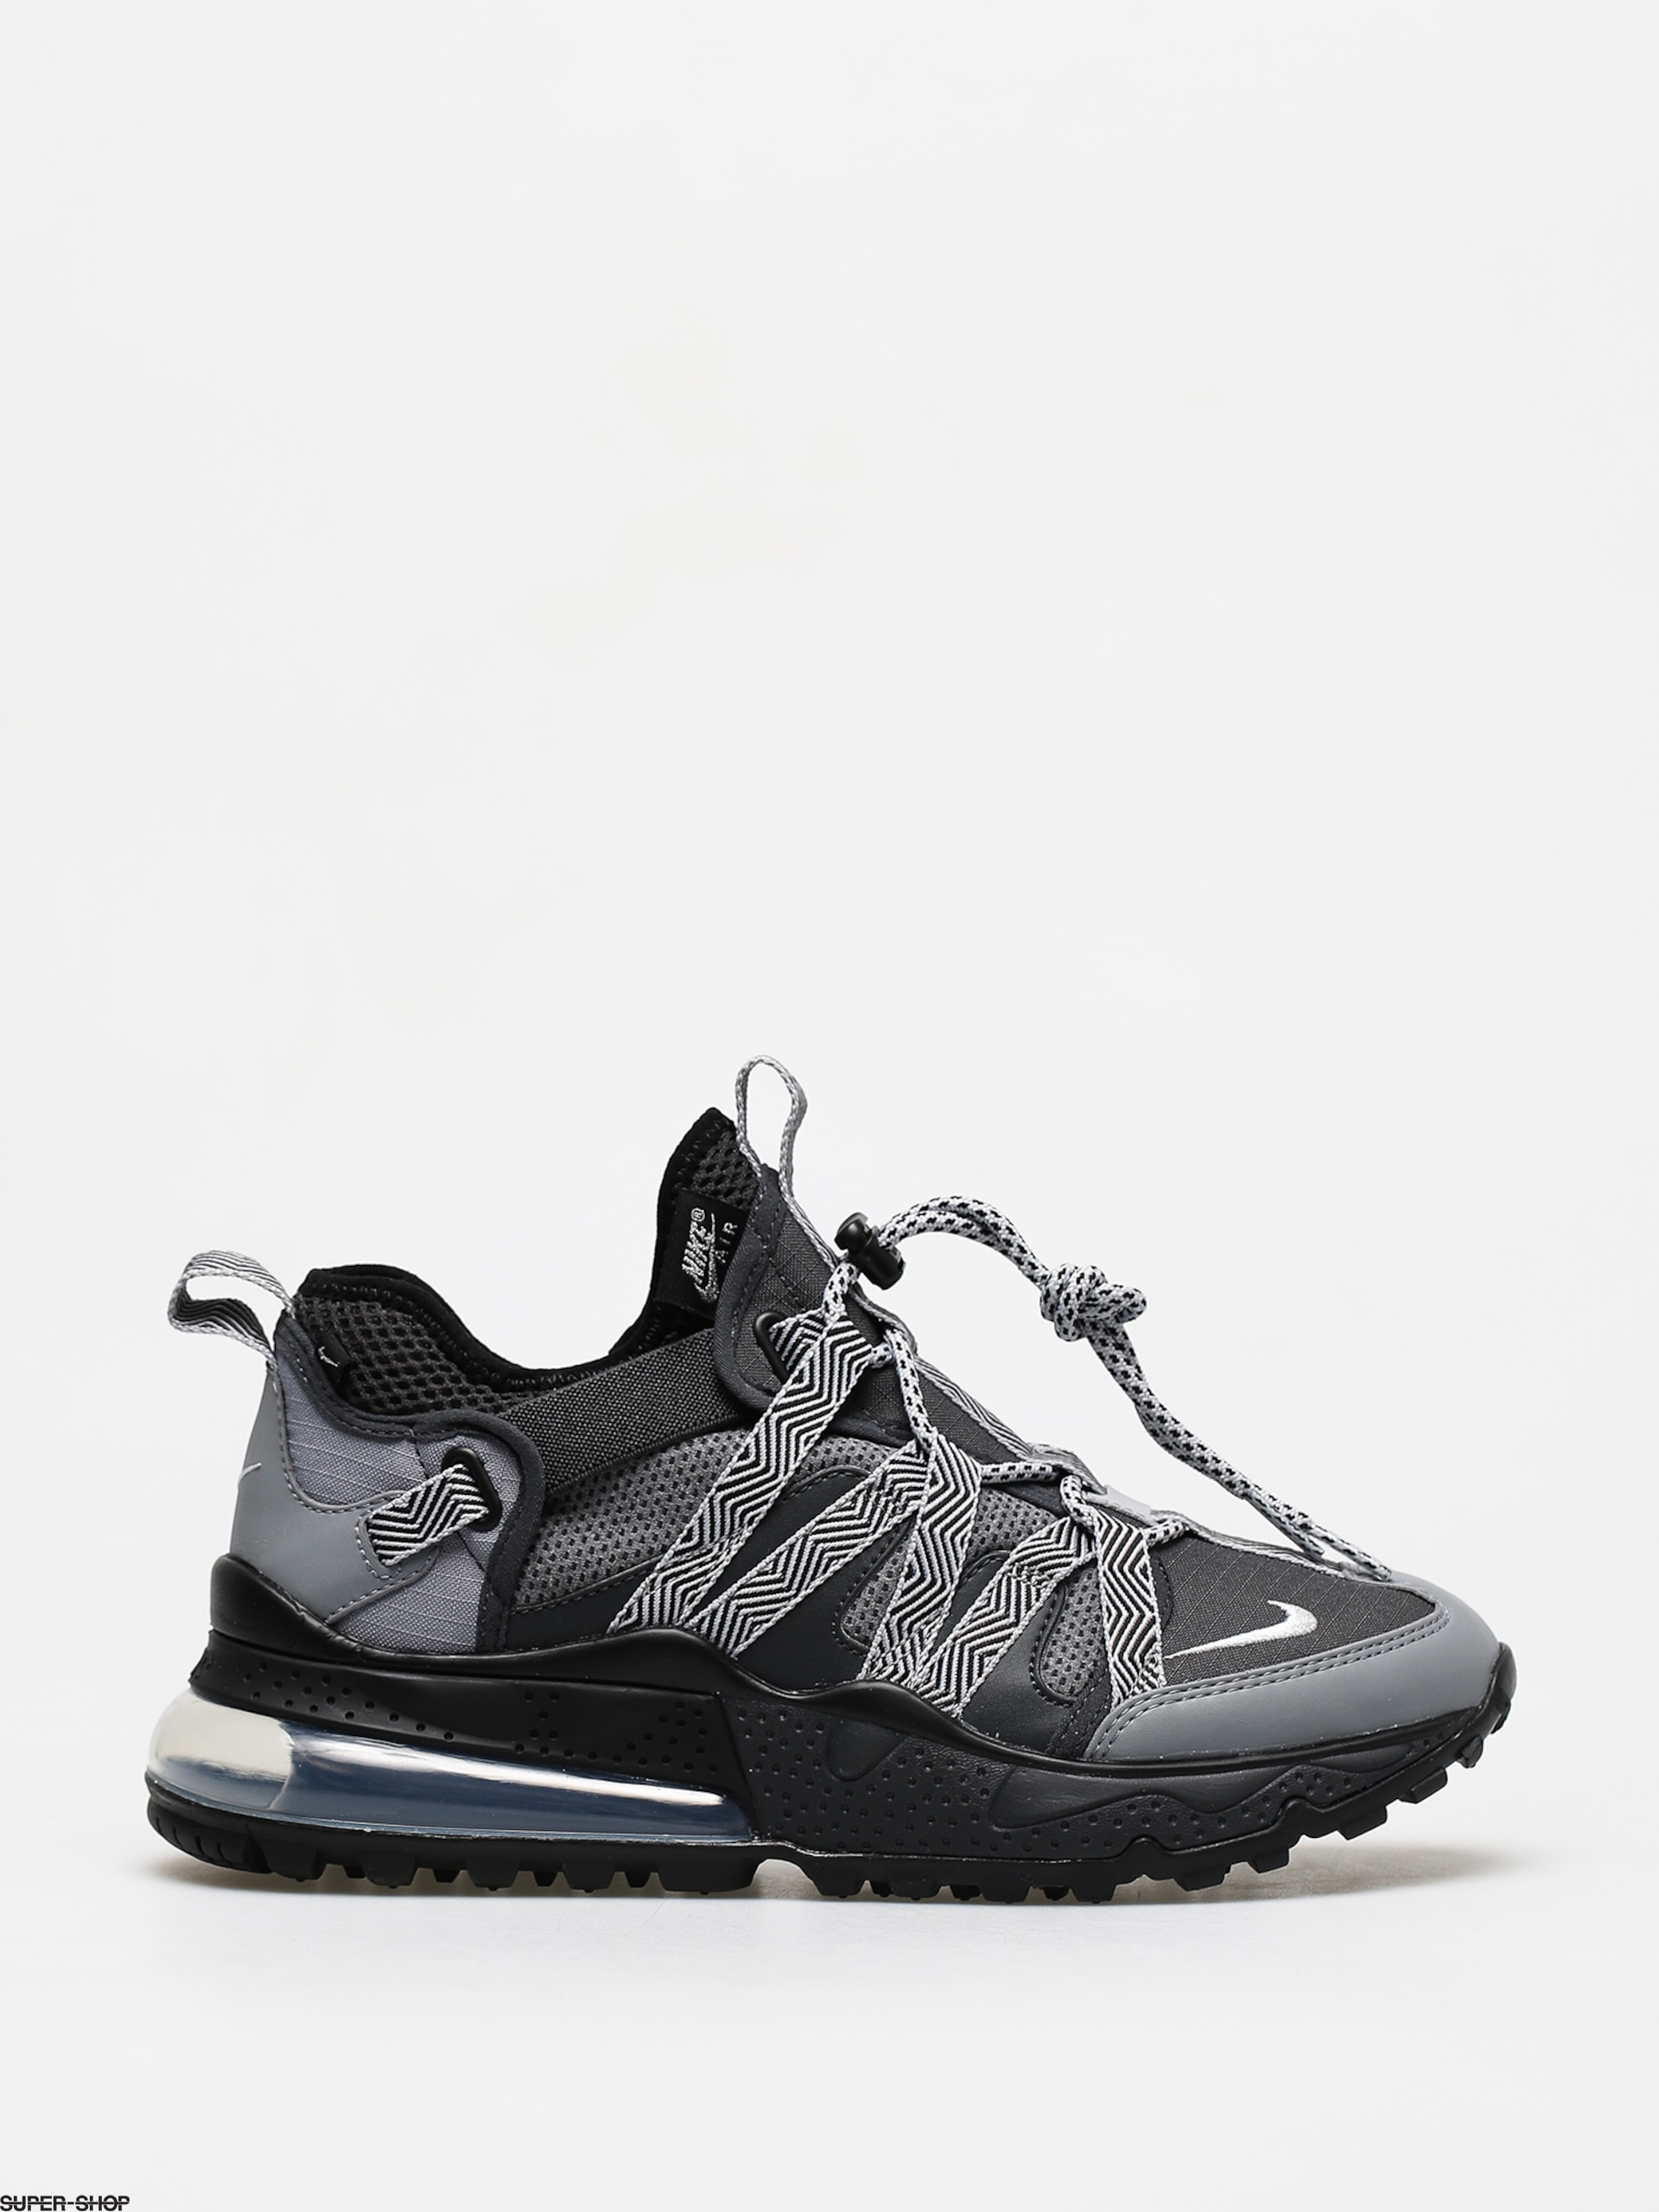 Nike Air Max 270 Bowfin Shoes (anthracitemetallic silver cool grey)